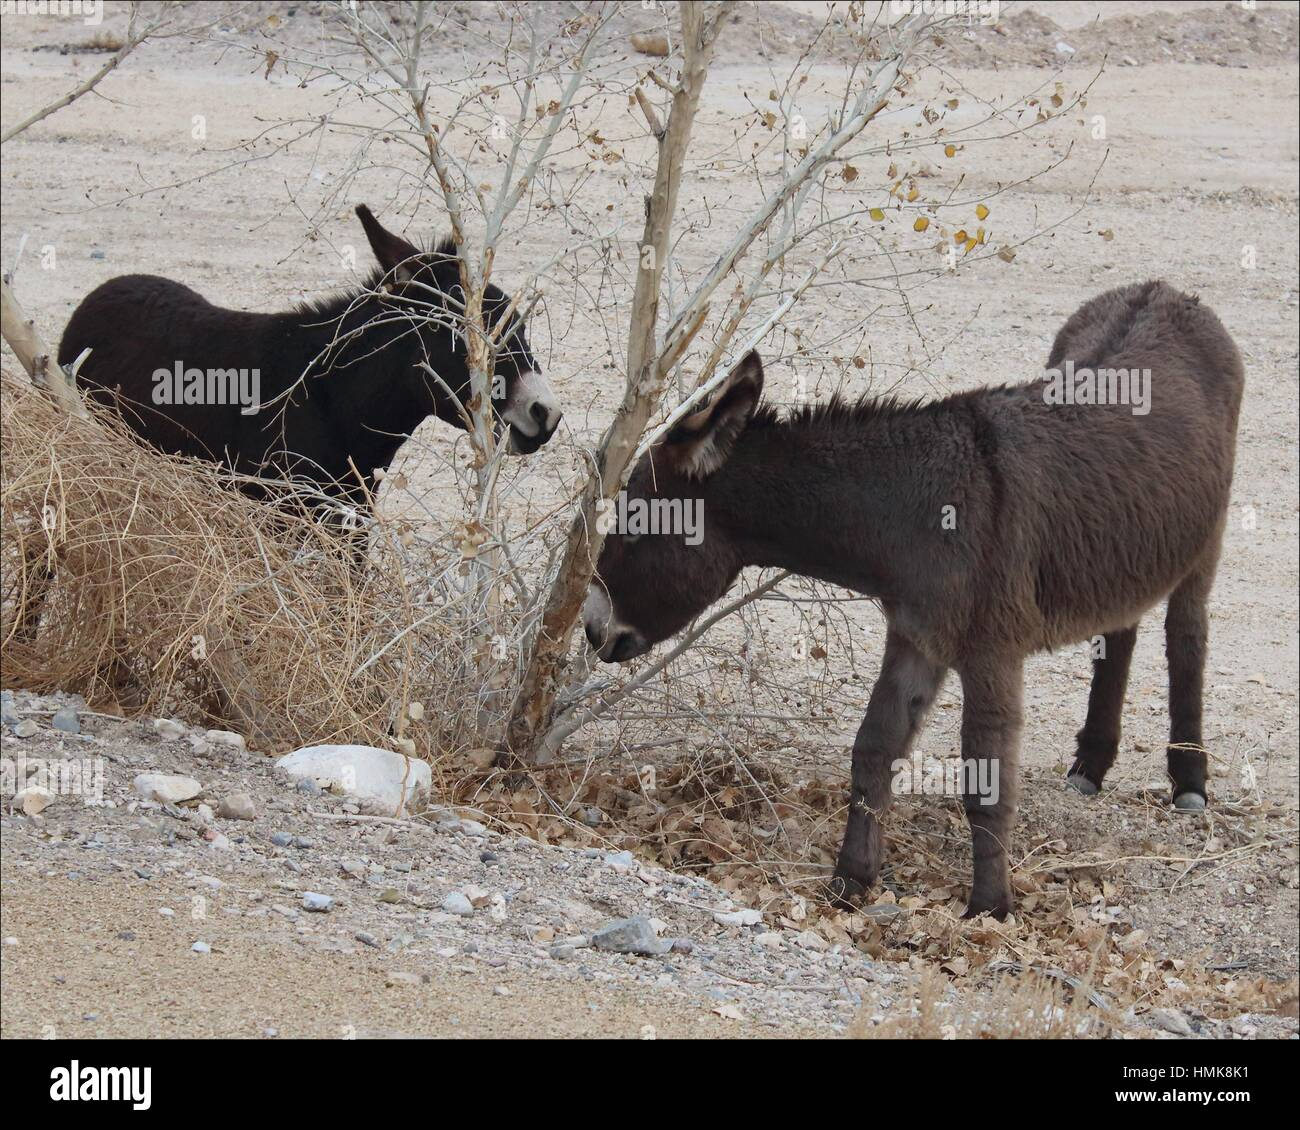 Wild burros left over from gold mining days wander along the road eating small trees in Beatty, Nevada, USA - Stock Image